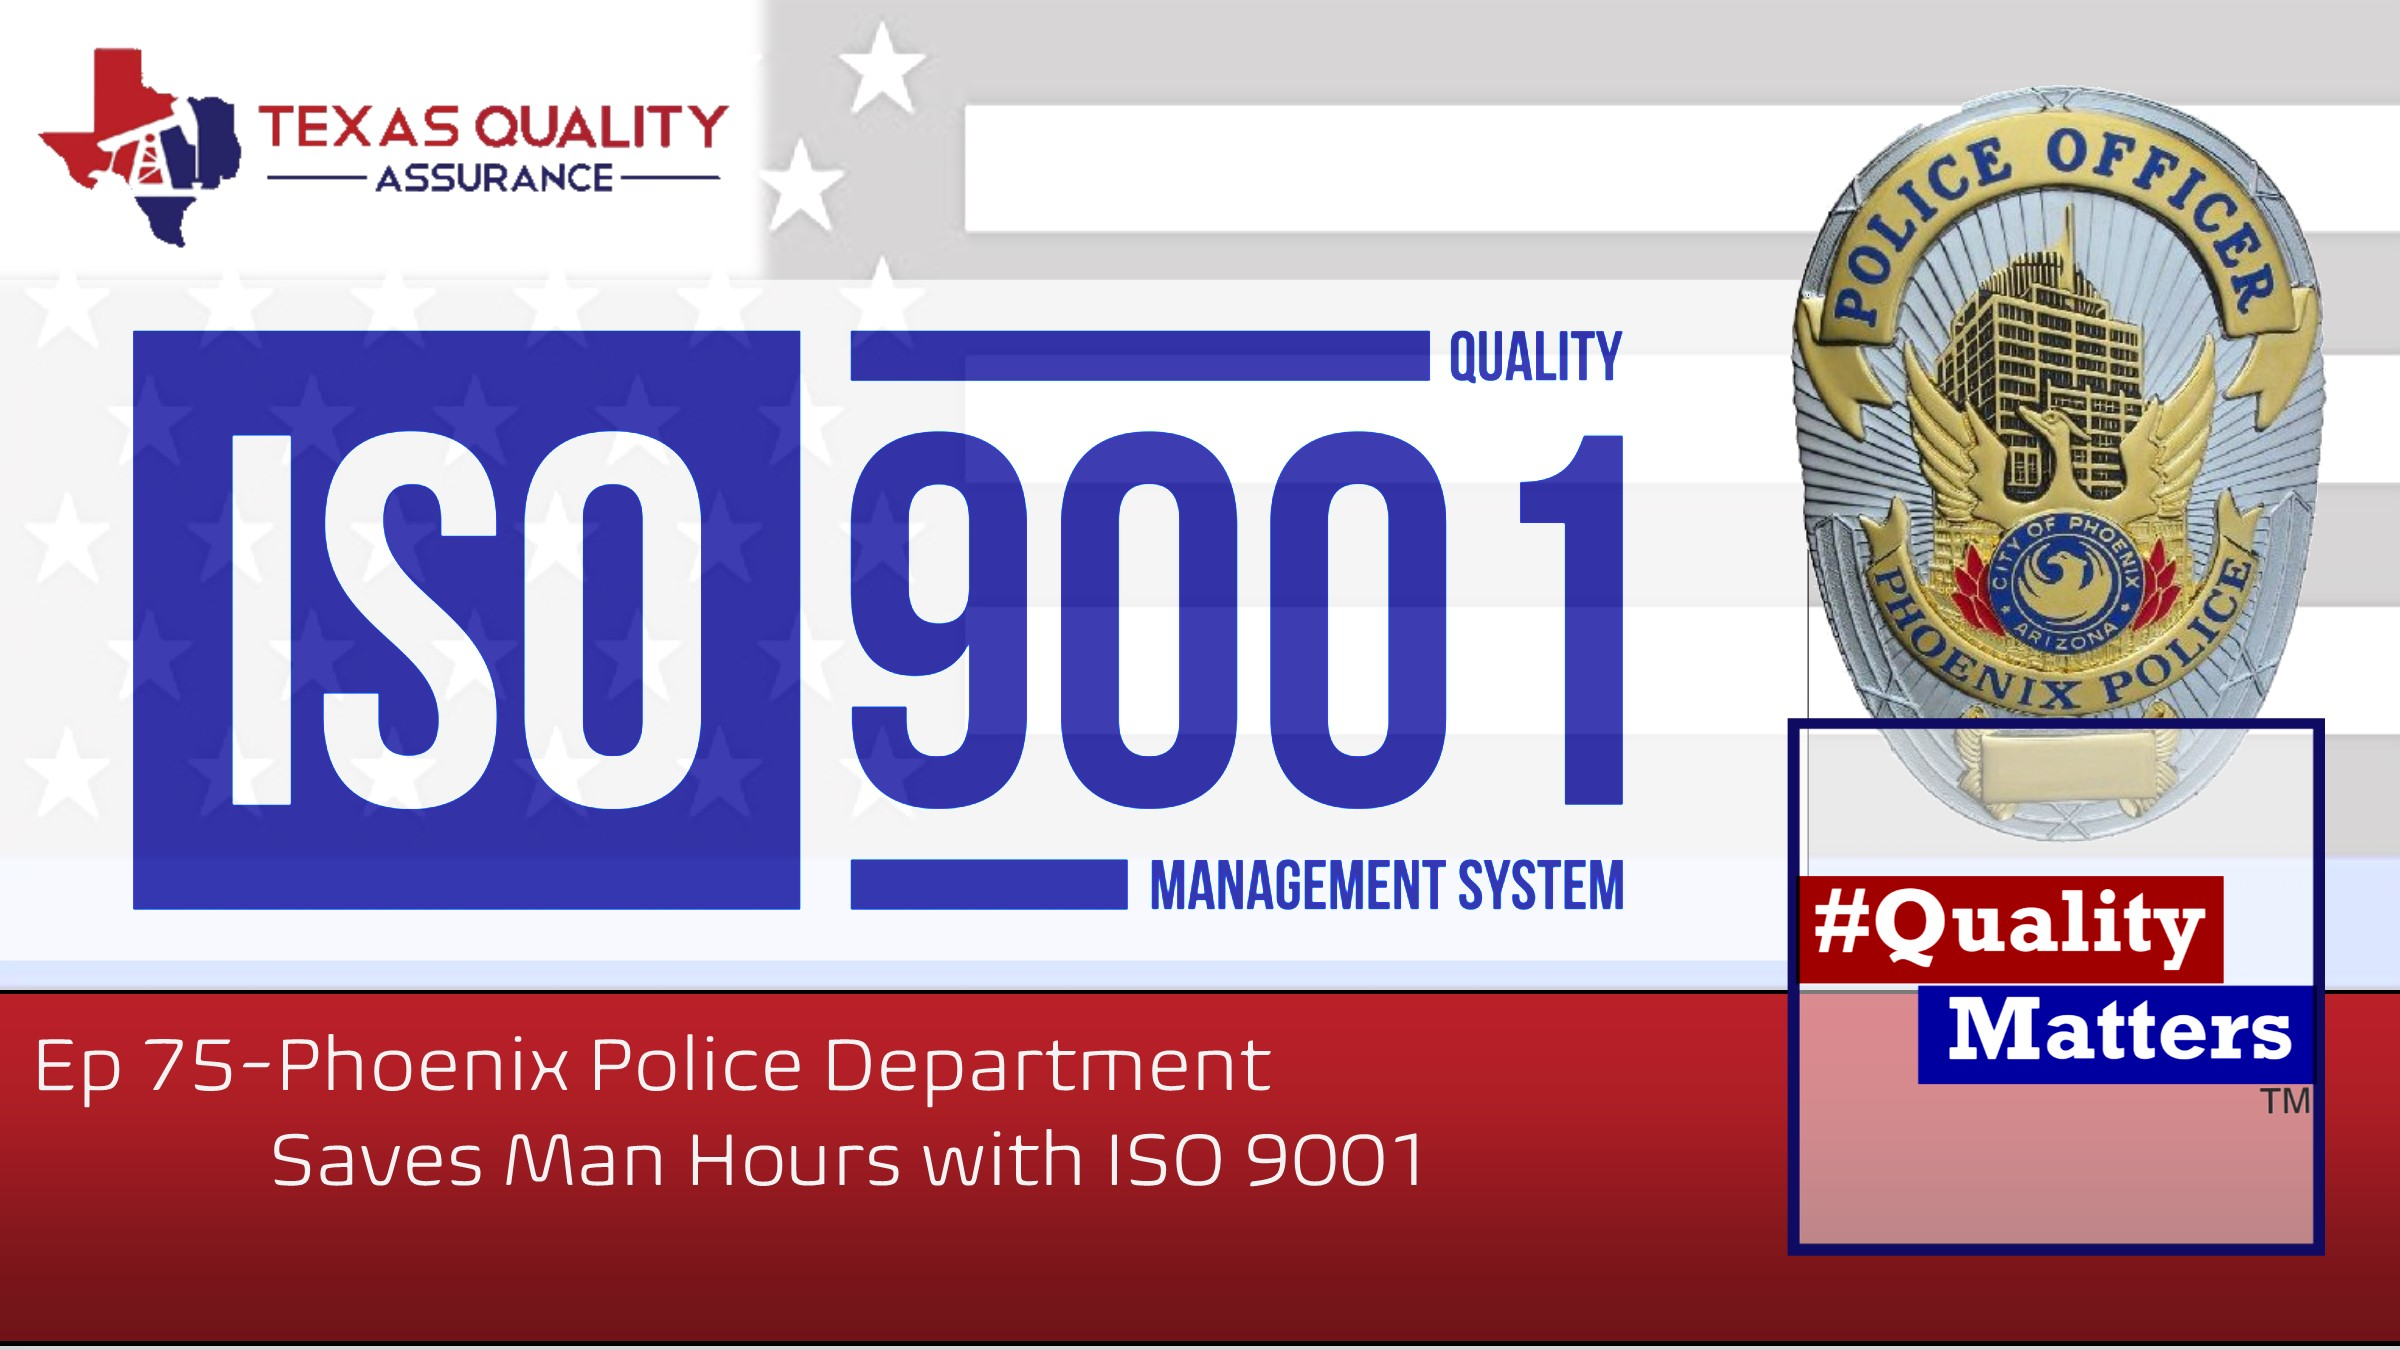 Ep 75 Phoenix Police Department Saves More Than Man Hours with ISO 9001